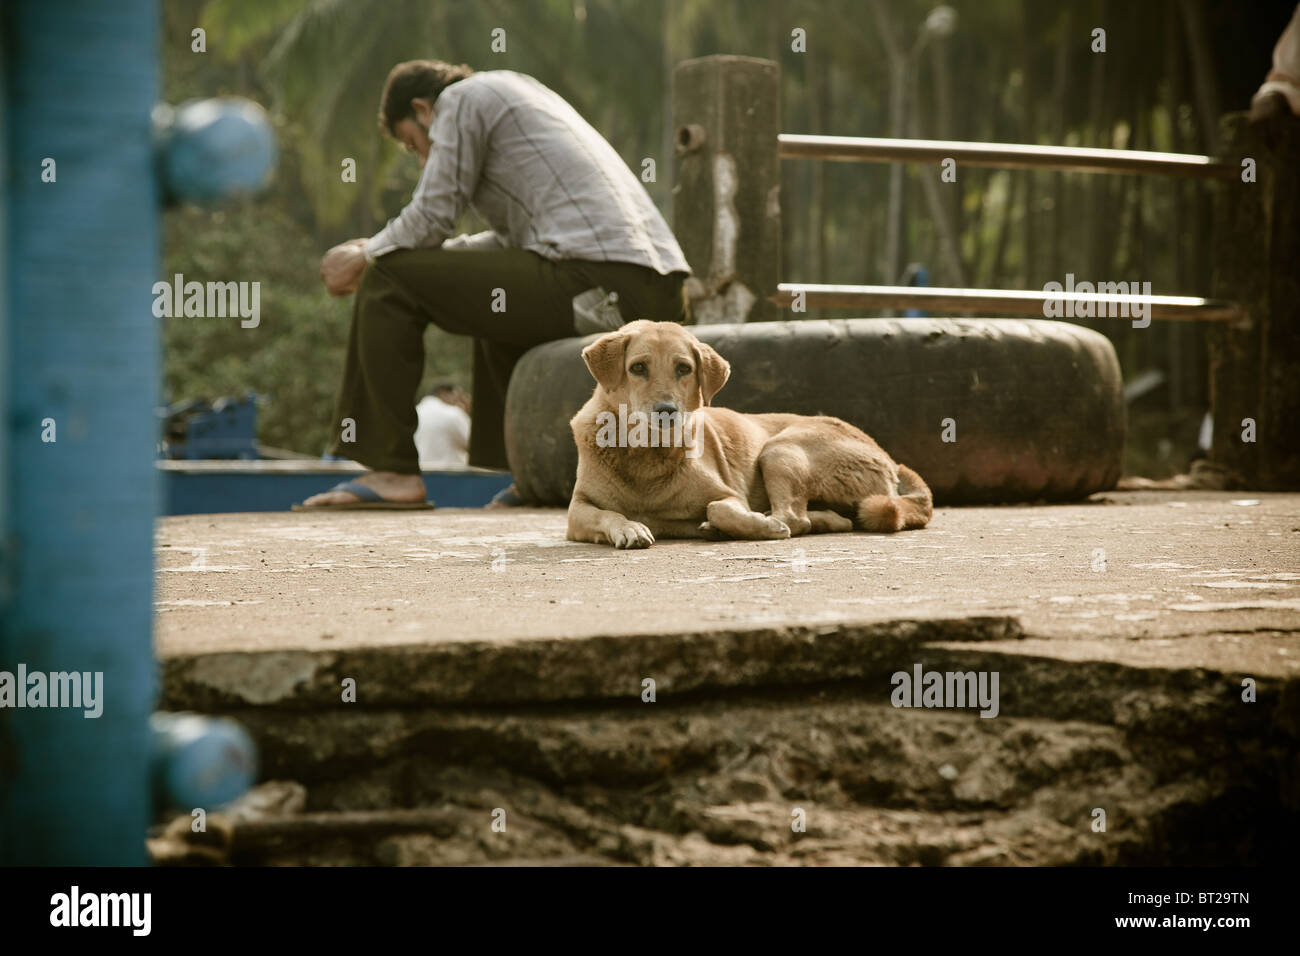 Editorial photo of dog laying near sad master - Stock Image